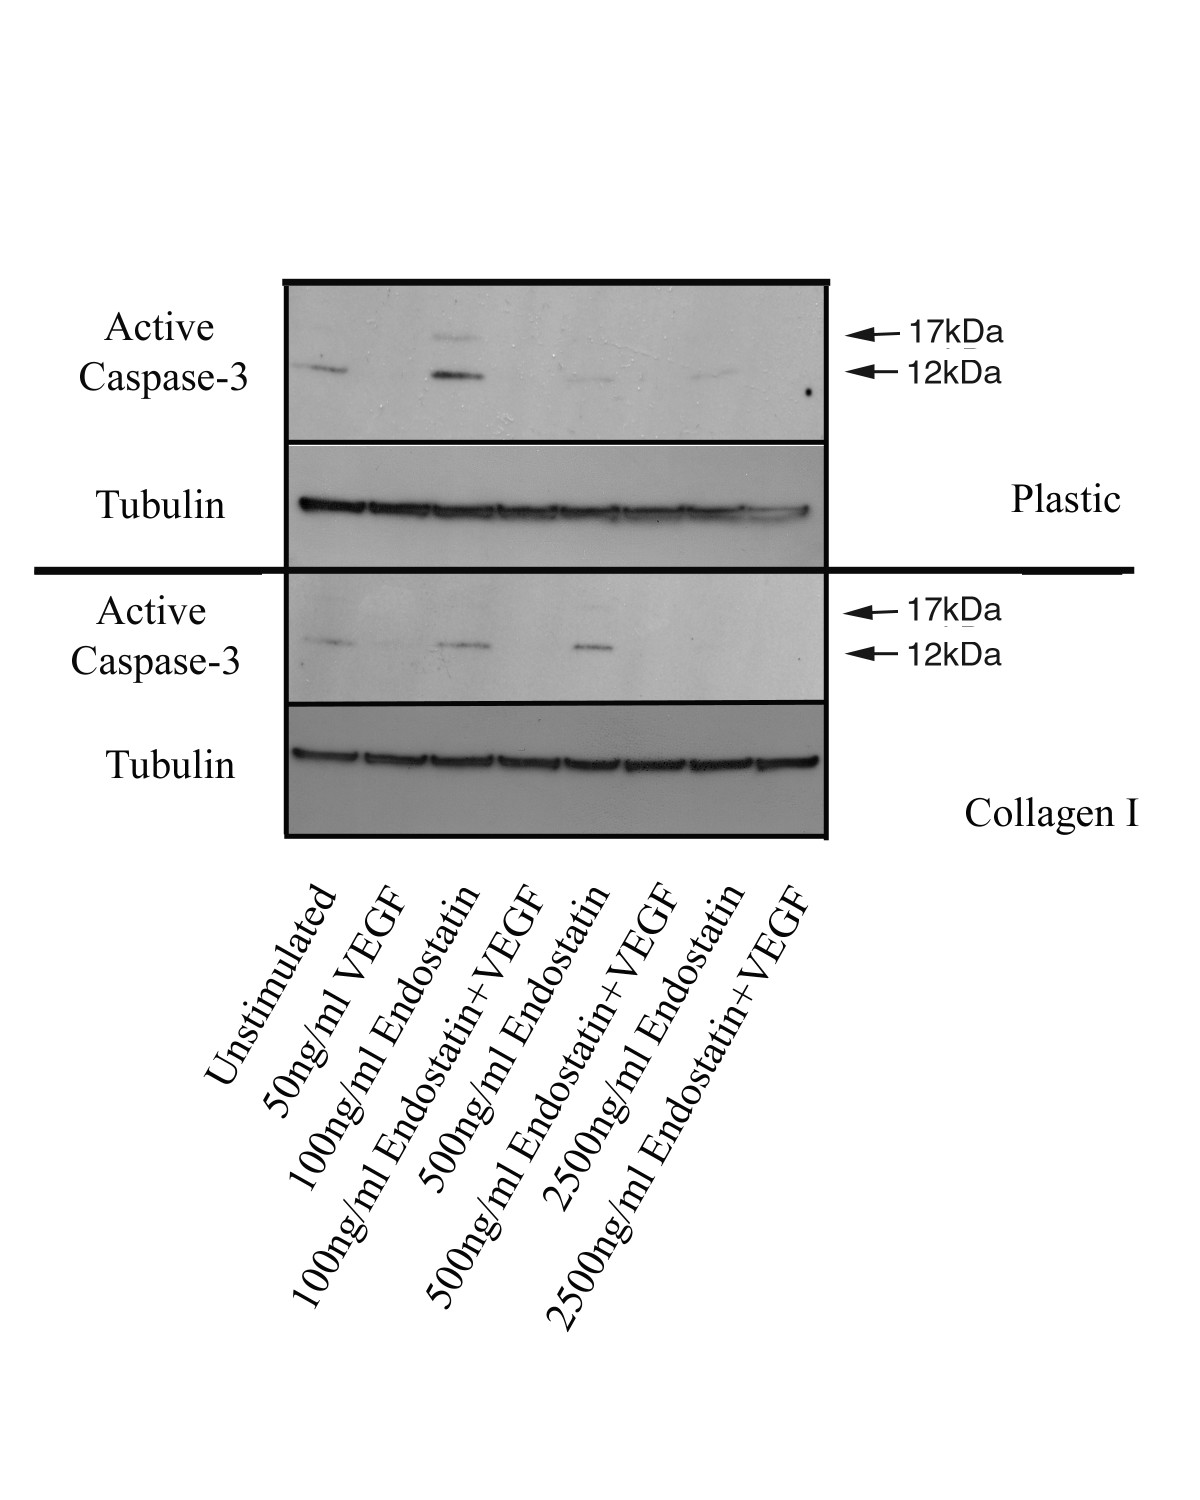 https://static-content.springer.com/image/art%3A10.1186%2F1471-2121-6-38/MediaObjects/12860_2004_Article_164_Fig7_HTML.jpg